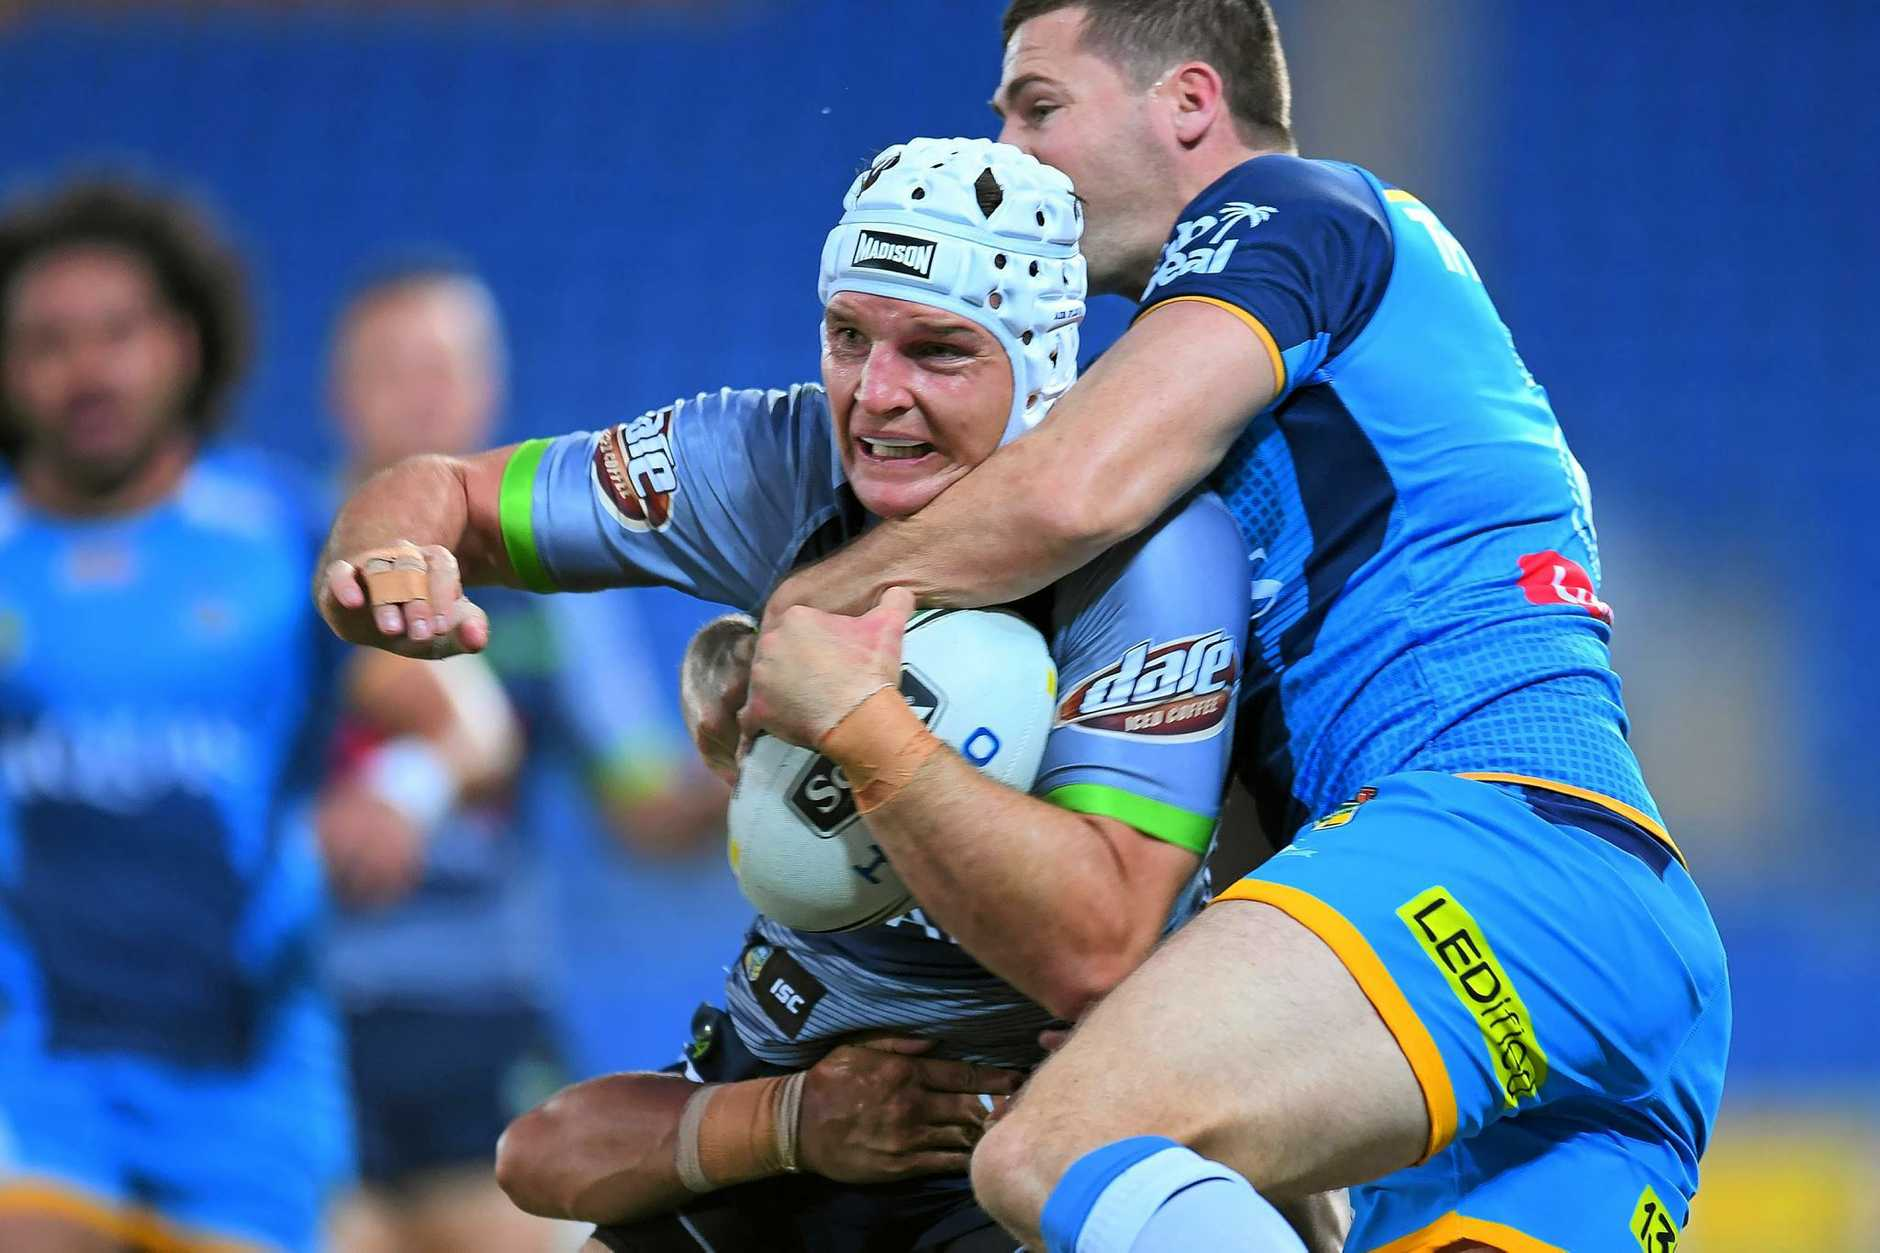 Jarrod Croker of the Raiders is tackled by the Titans.